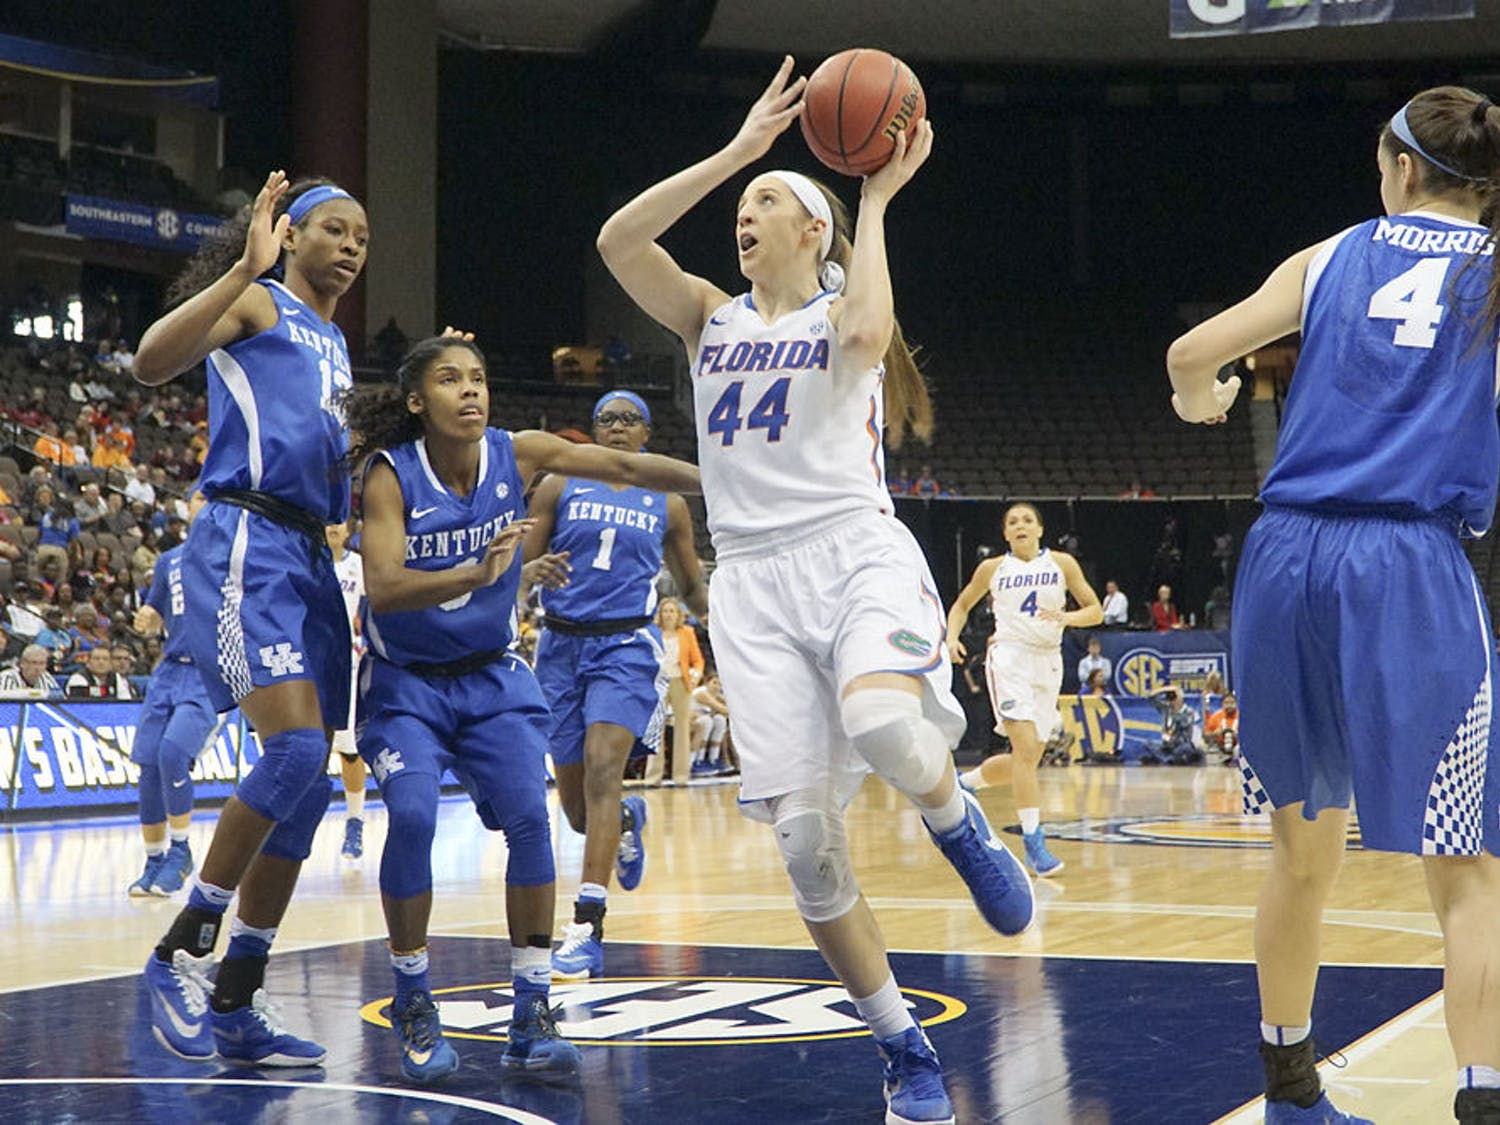 Haley Lorenzen attempts a layup during Florida's 92-69 loss to Kentucky in the Southeastern Conference Tournament on March 4, 2016, at Jacksonville Veterans Memorial Arena.